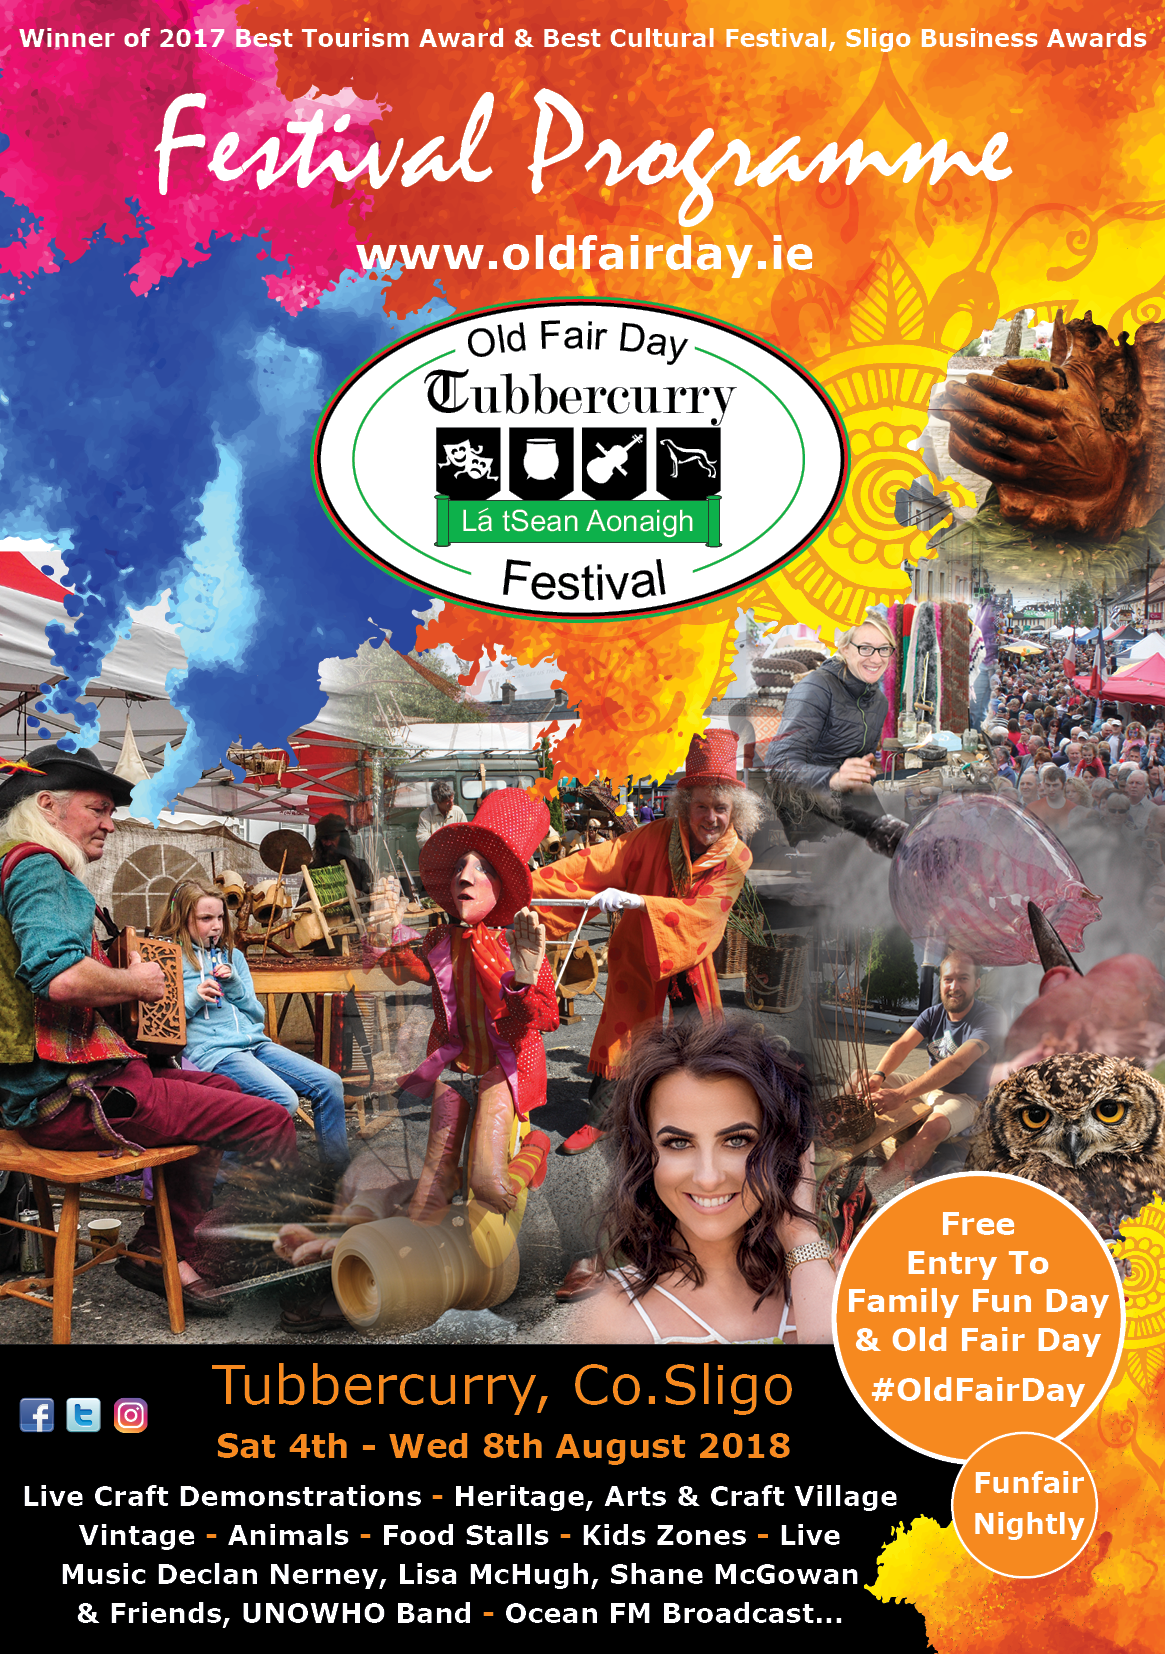 Tubbercurry Old Fair Day Festival Programme 20186